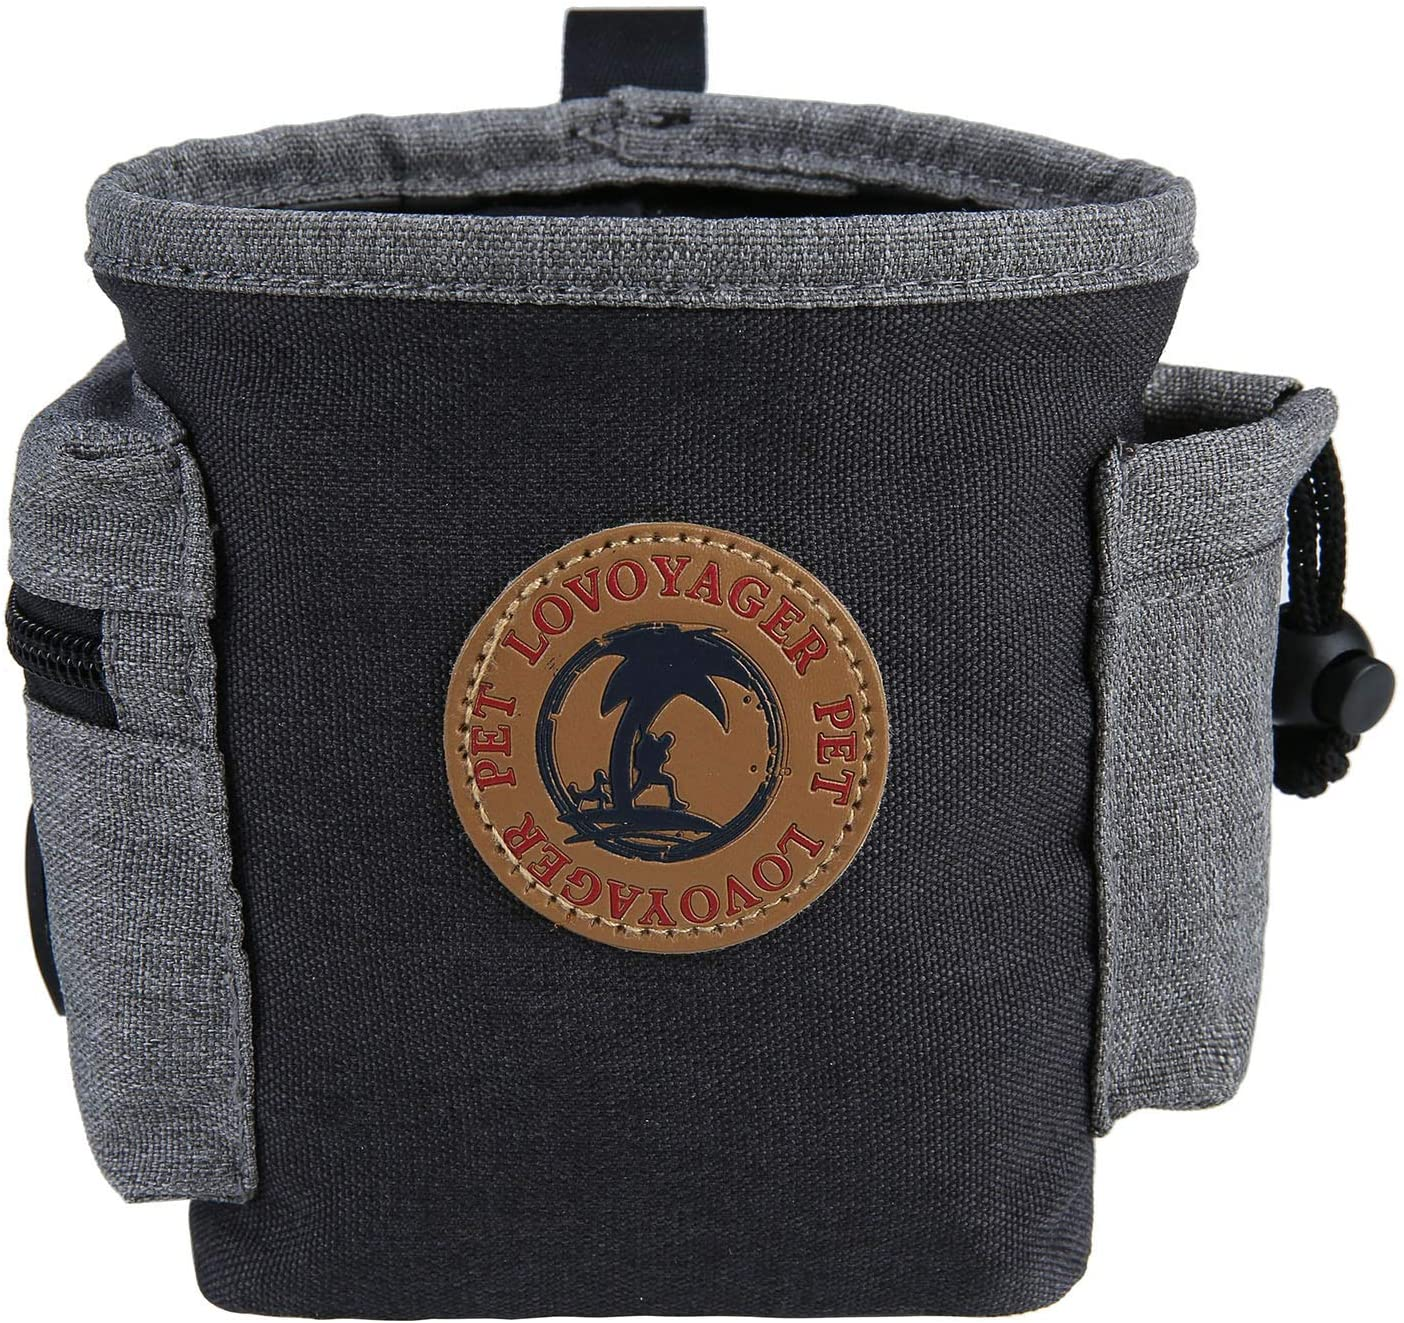 EVANCARY Treat Pouch, Dog Treat Bag for Training Small to Large Dogs Built-in Poop Bag Dispenser